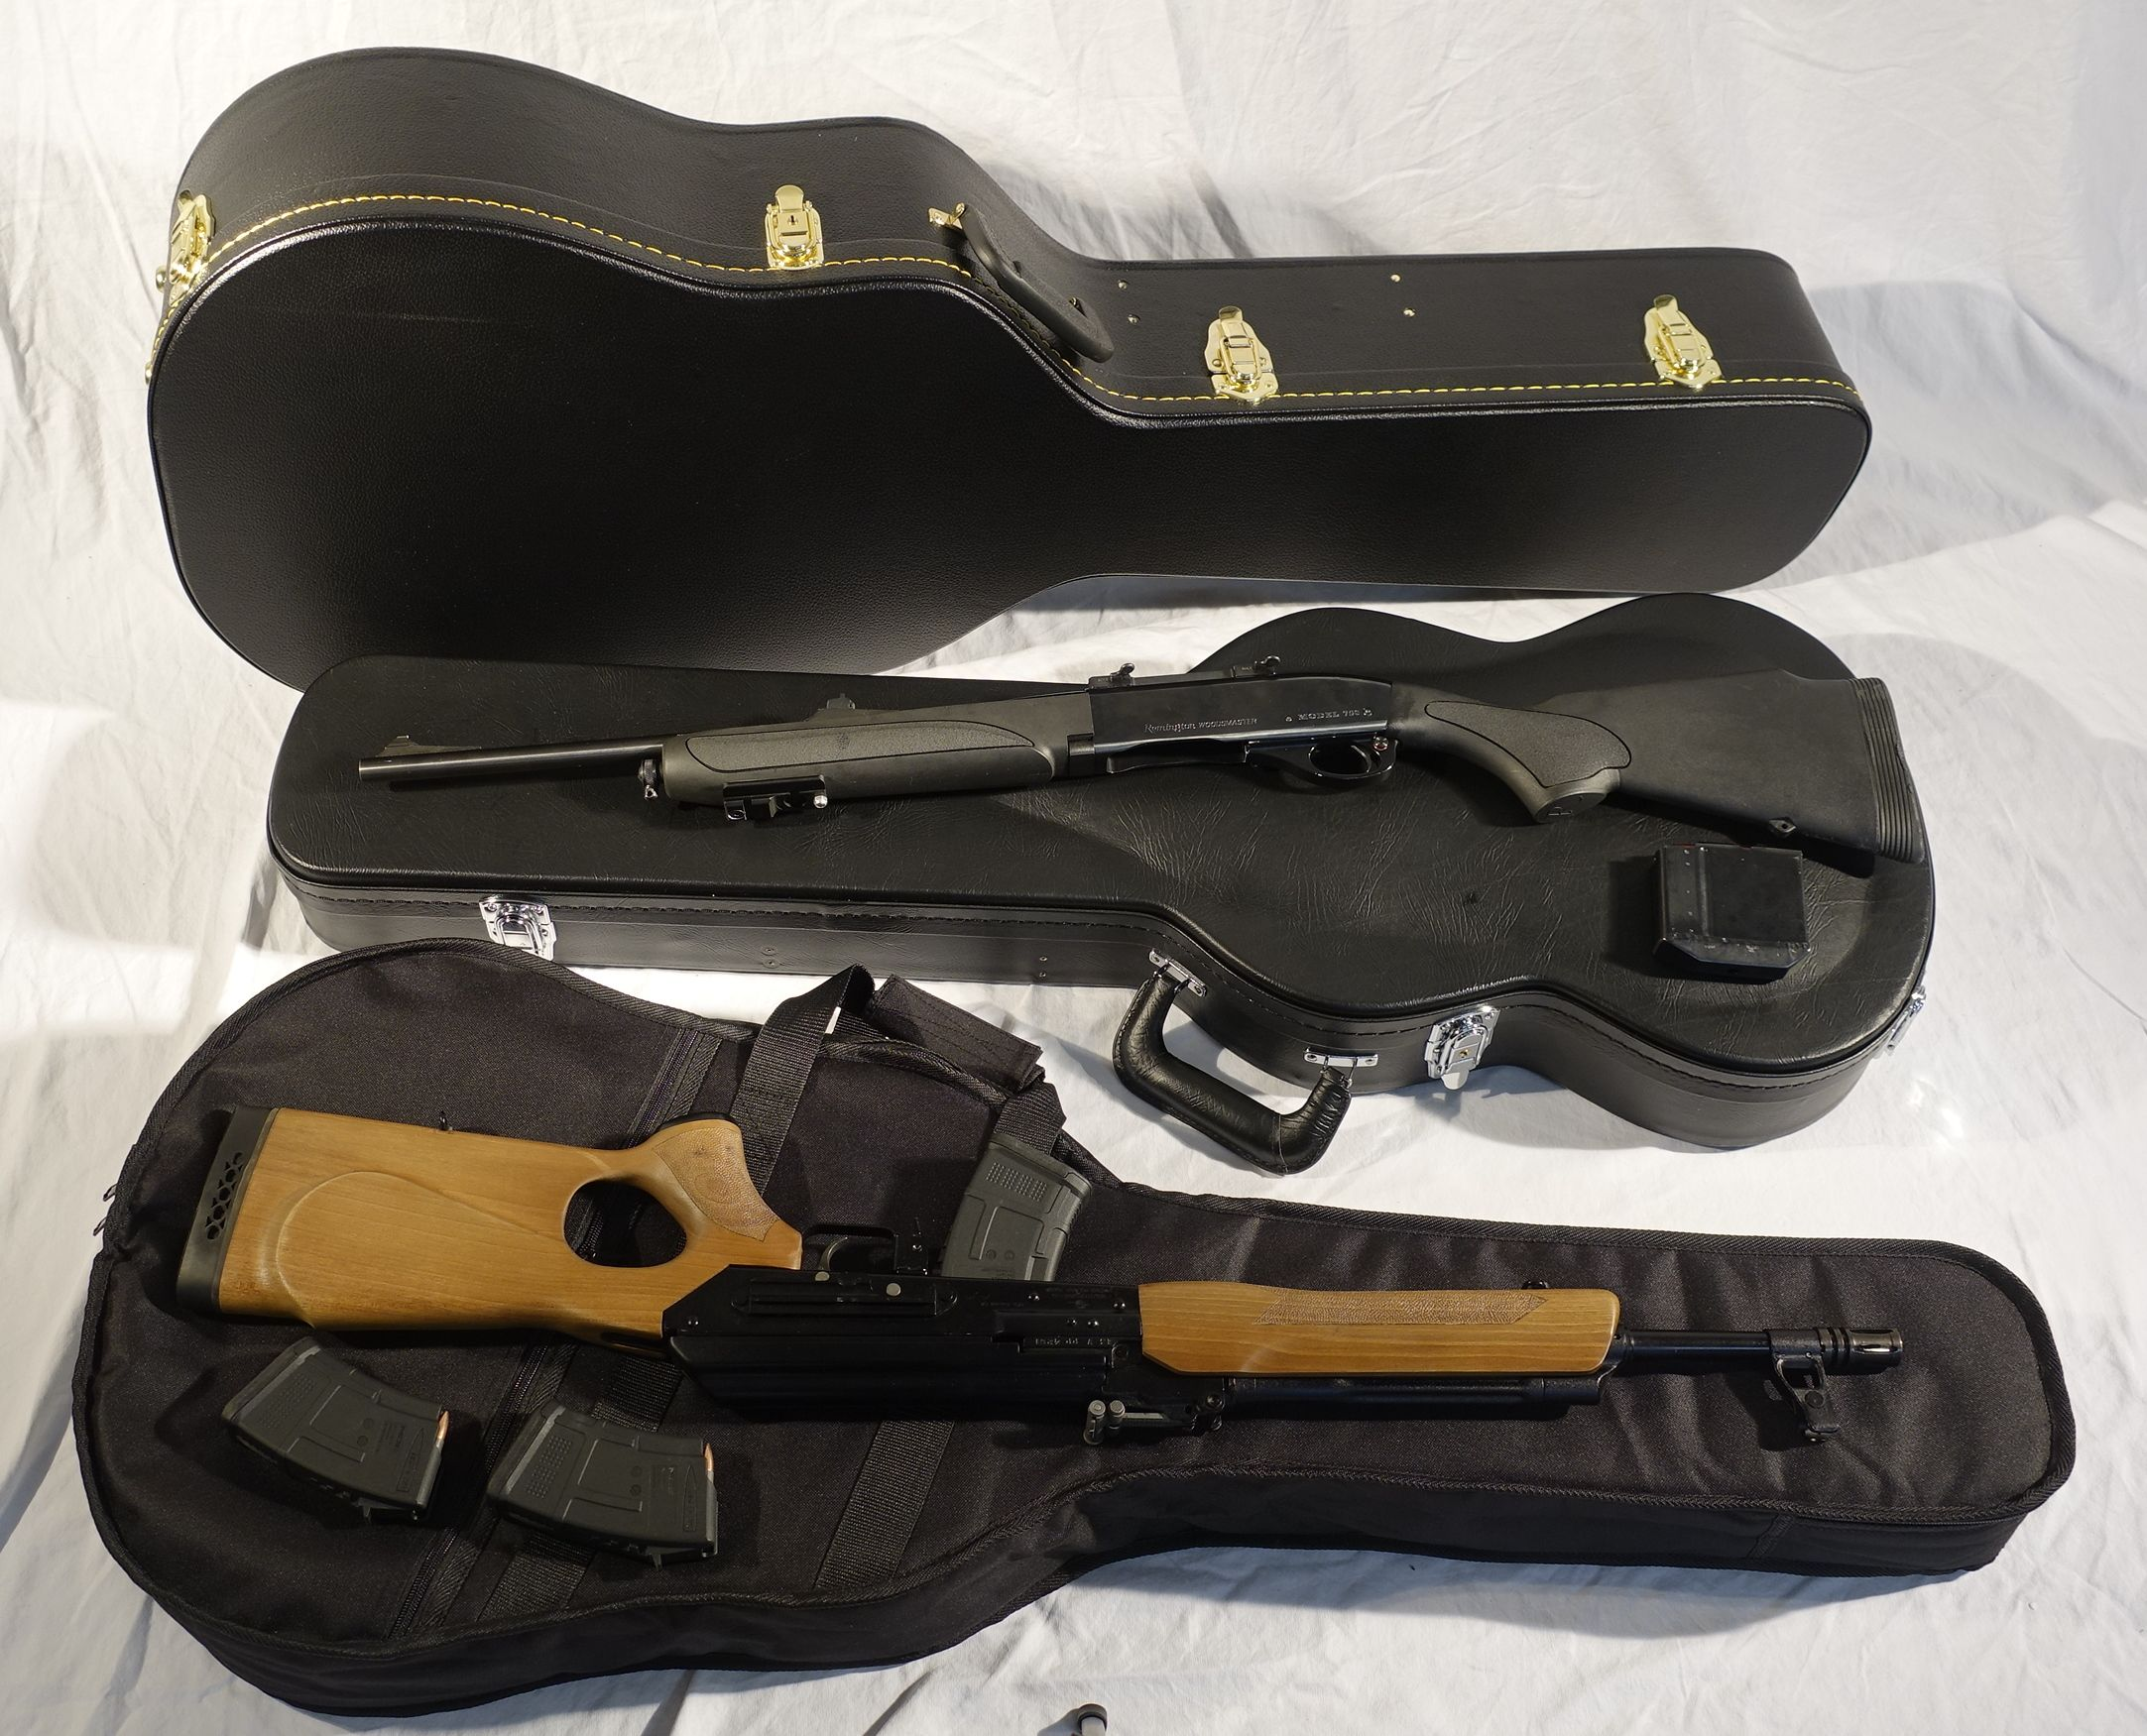 a9f0aed919 Covert Gun Cases, Privacy & Protection - Rifle cases in a covert guitar case.  Better than a Pelican gun case! Soft or hard cases for Shotgun and Pistol.